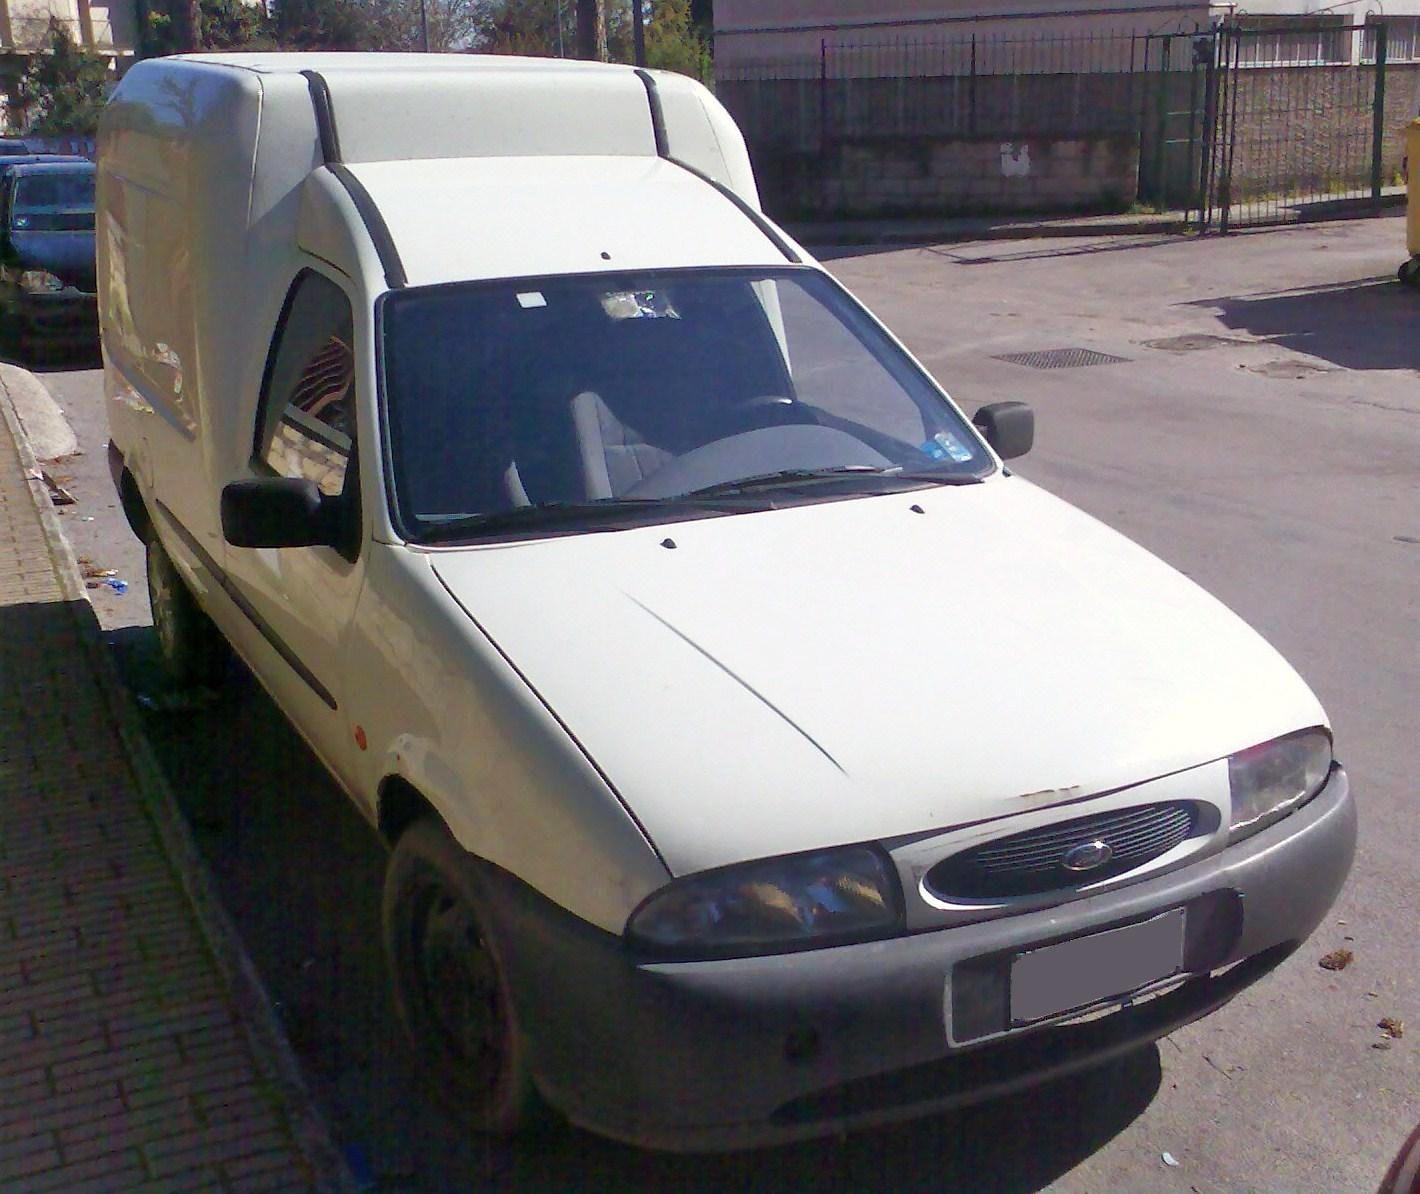 File:Ford Courier (Fiesta based).jpg - Wikimedia Commons